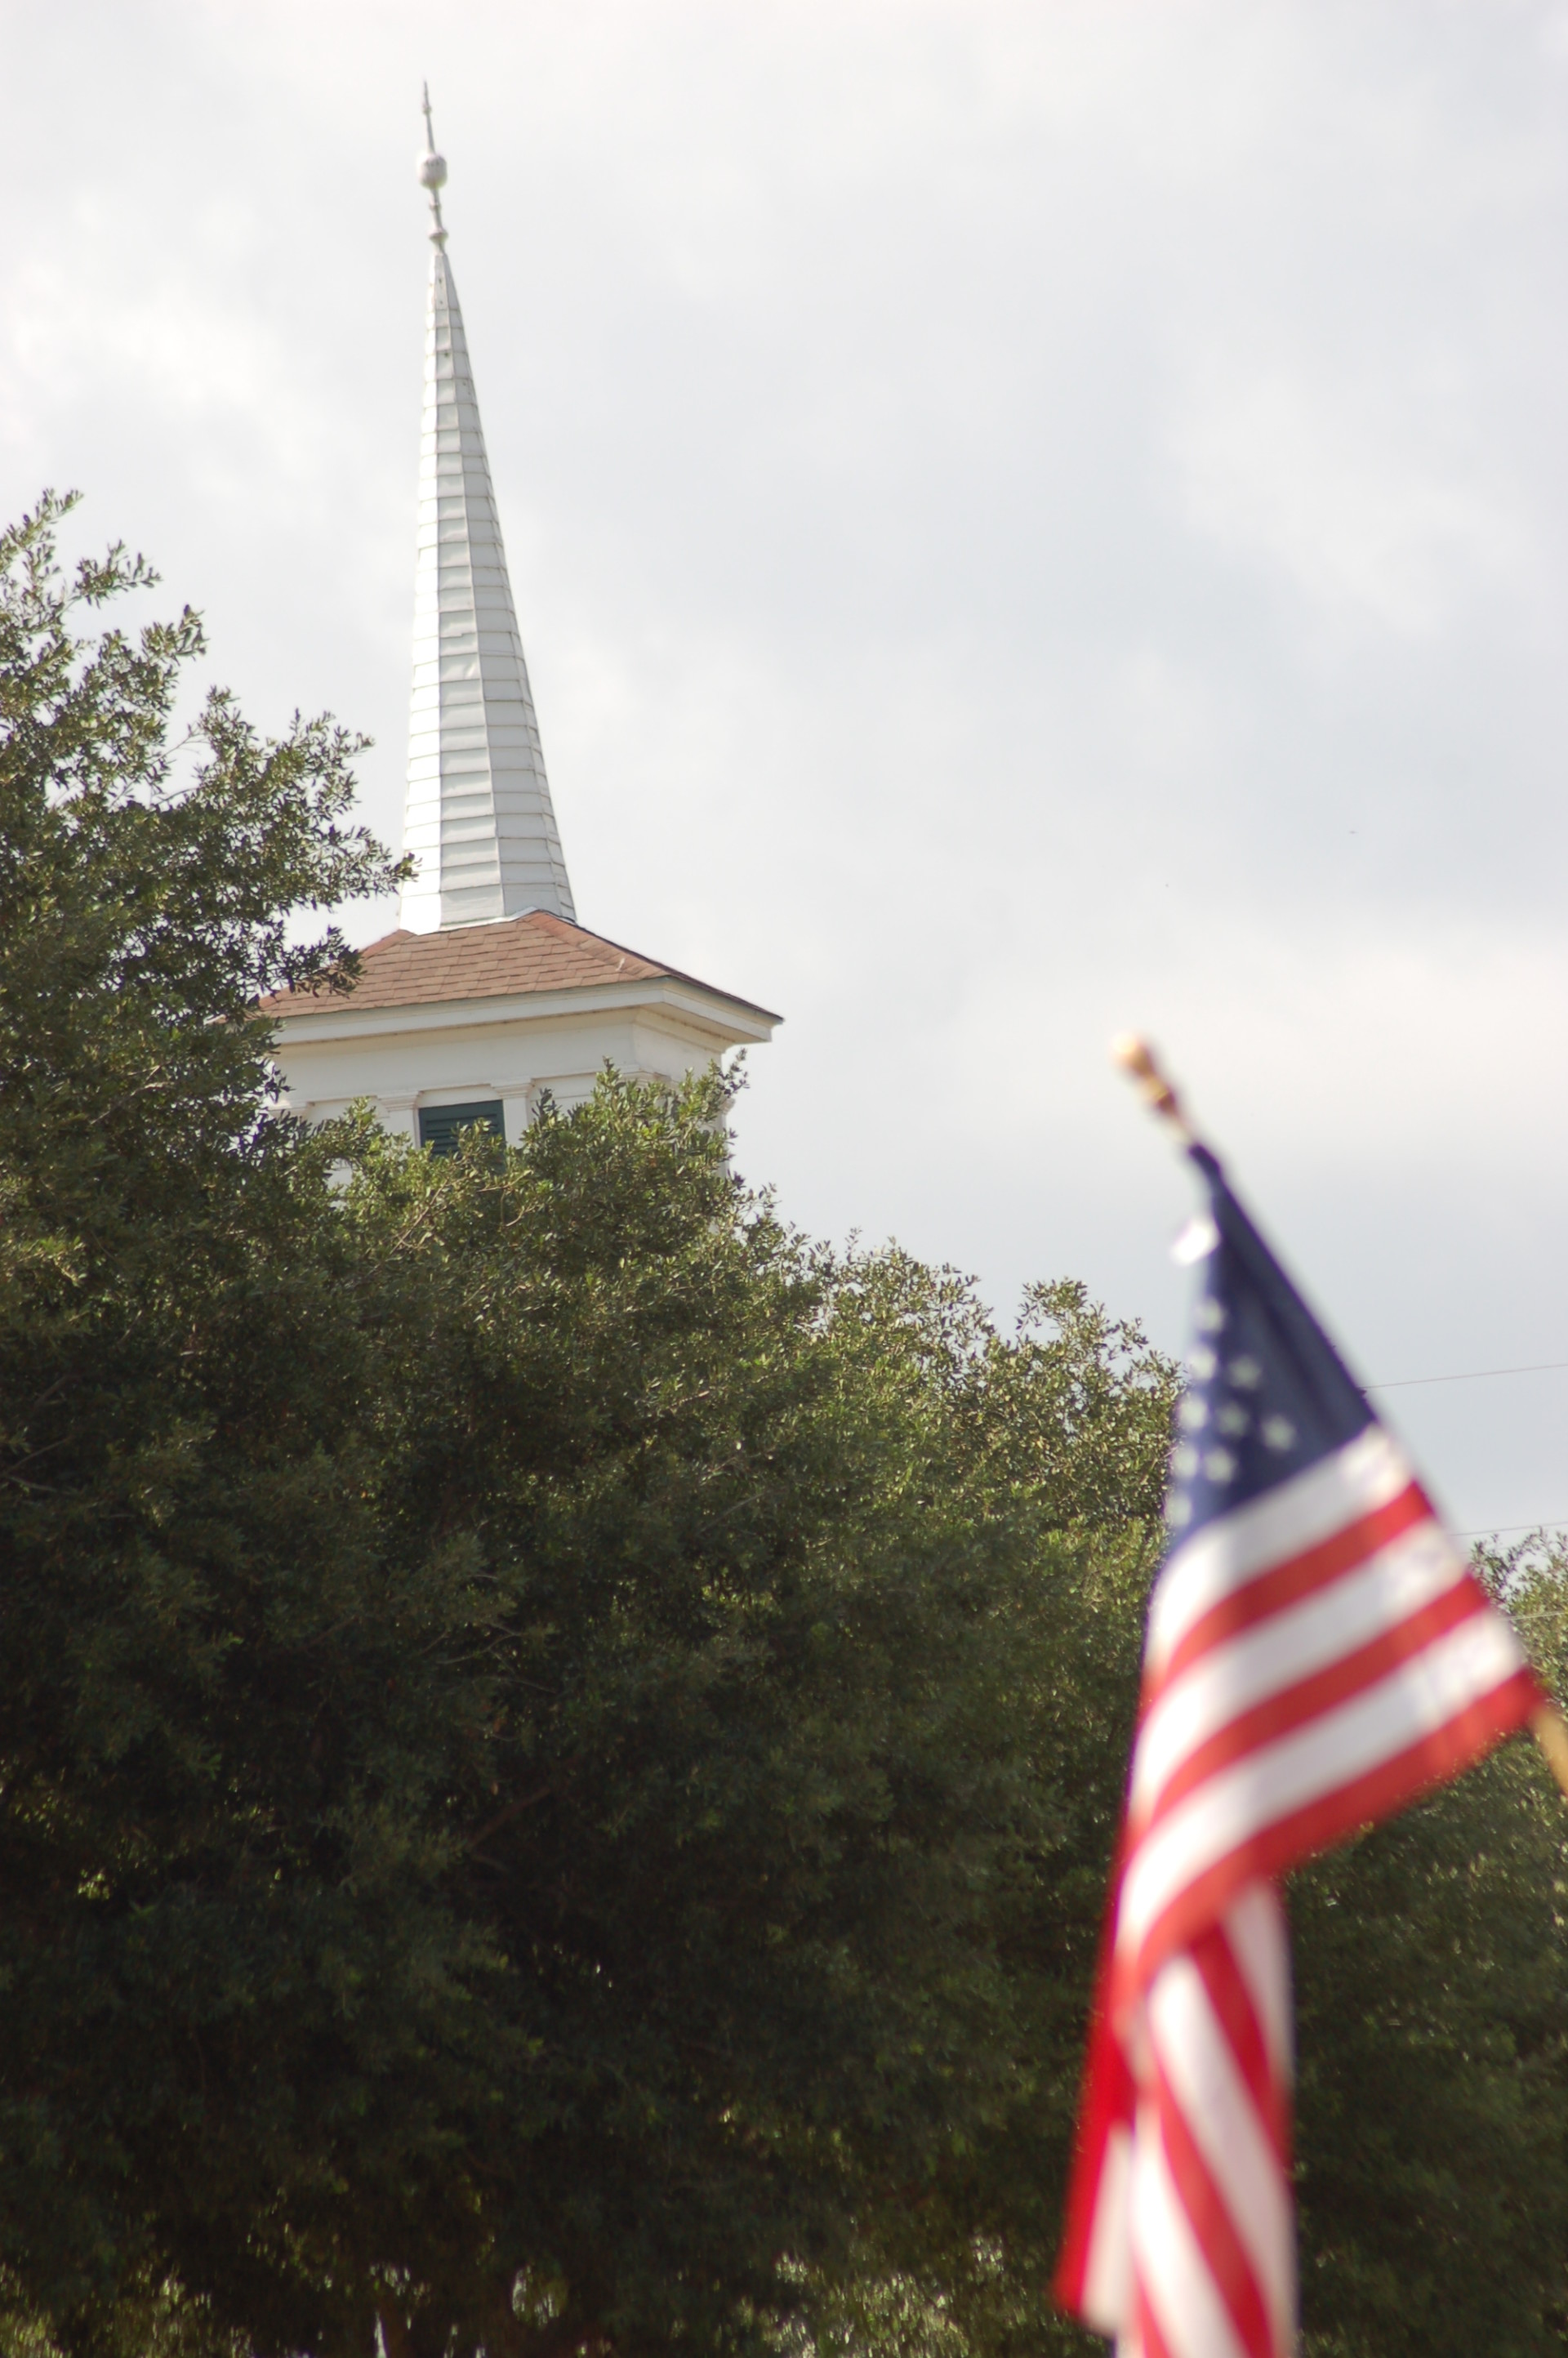 4th_July_2012_Flag_Steeple-w1920.jpg